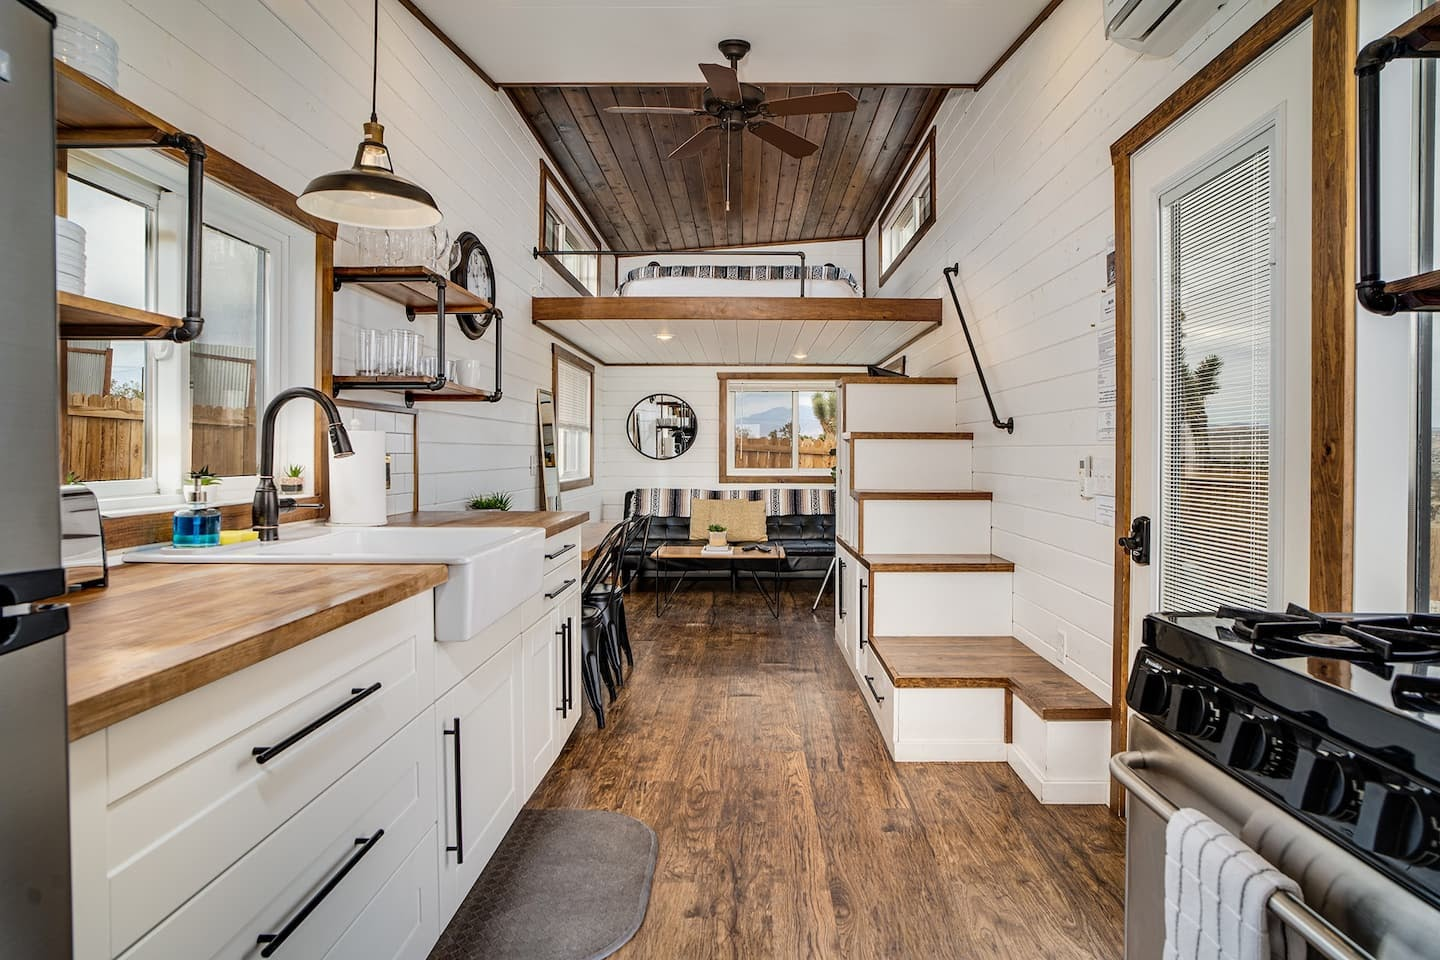 Interior of The Little Dipper with an open living area, contemporary kitchen and floating platform with a Queen bed